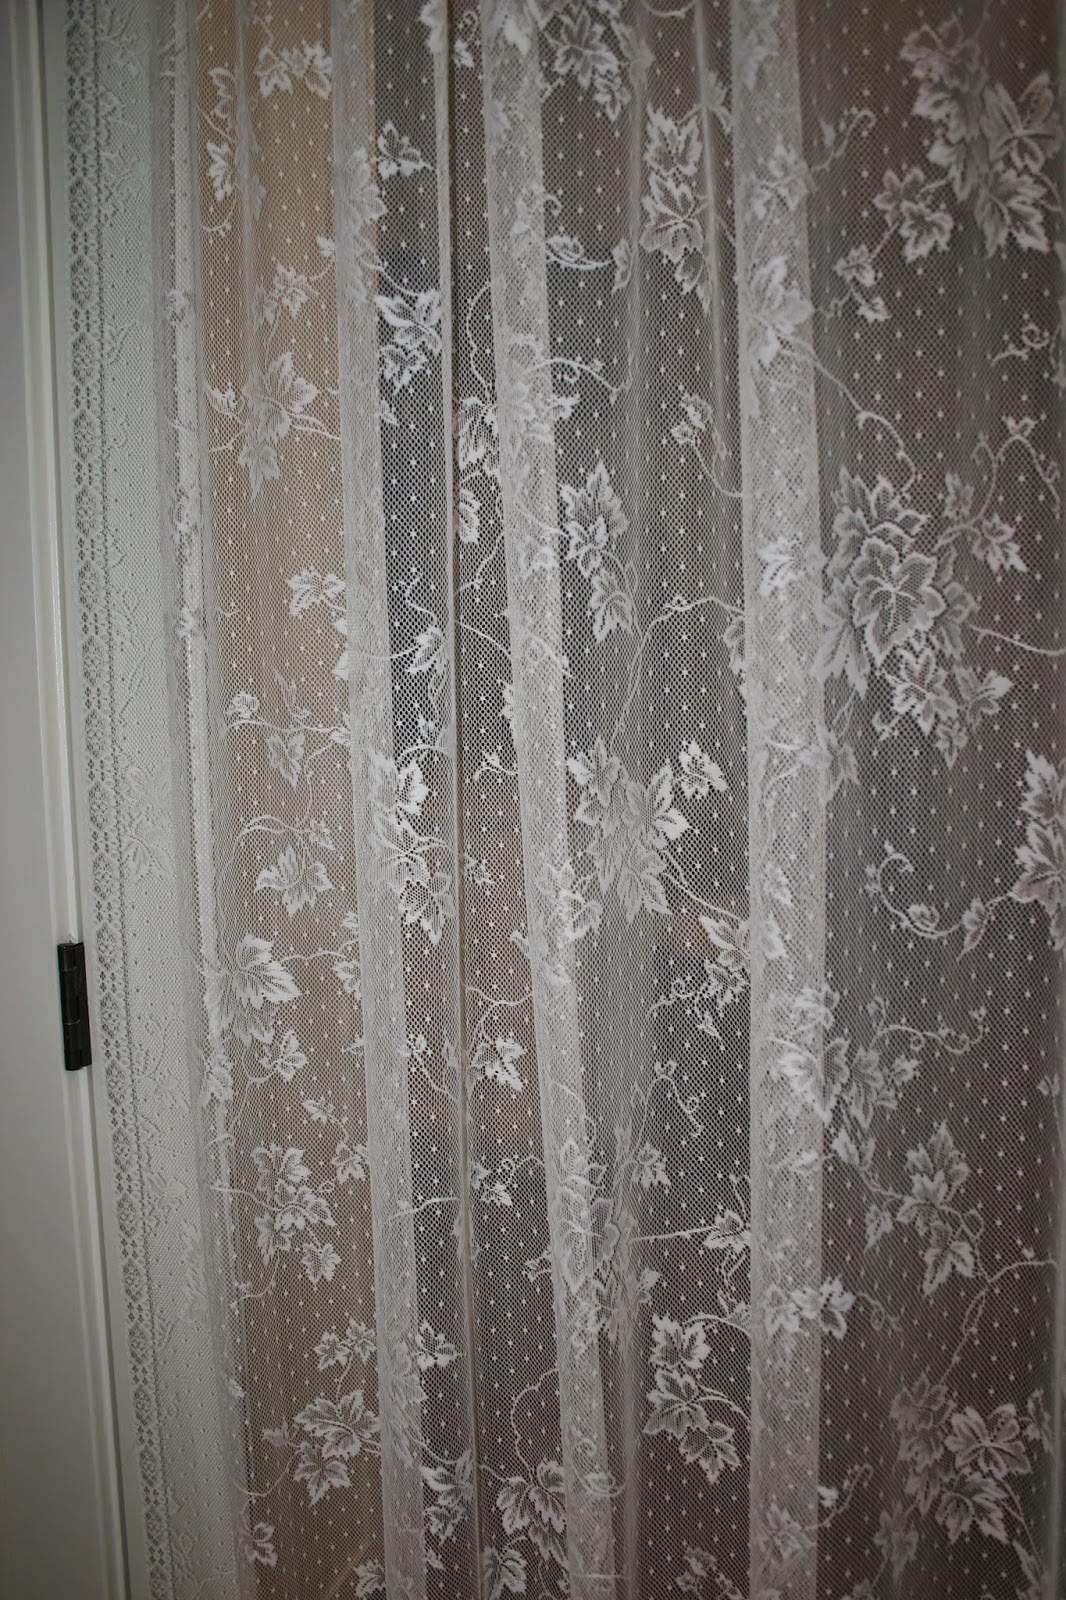 I Have Always Been Found Of Lace And So This Curtain Makes My Heart Sing  And The Best Thing Is, I Will Not Run Smack Into The Door ...